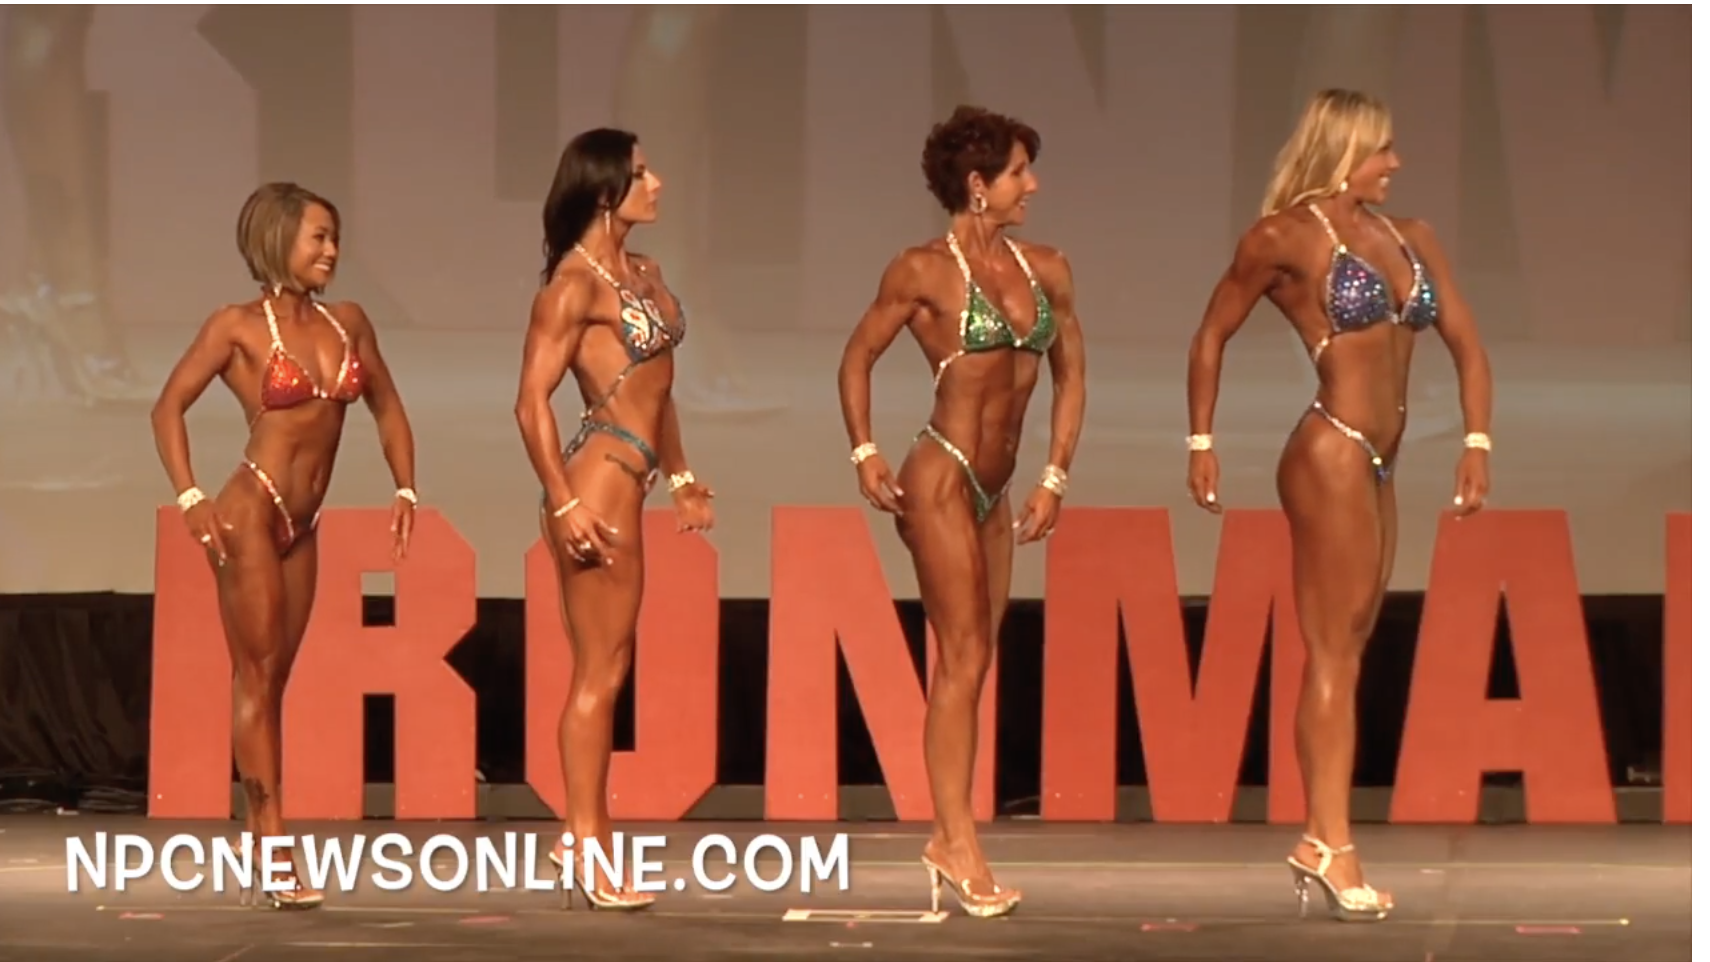 2017 NPC Washington Ironman Women's Figure Overall Video.